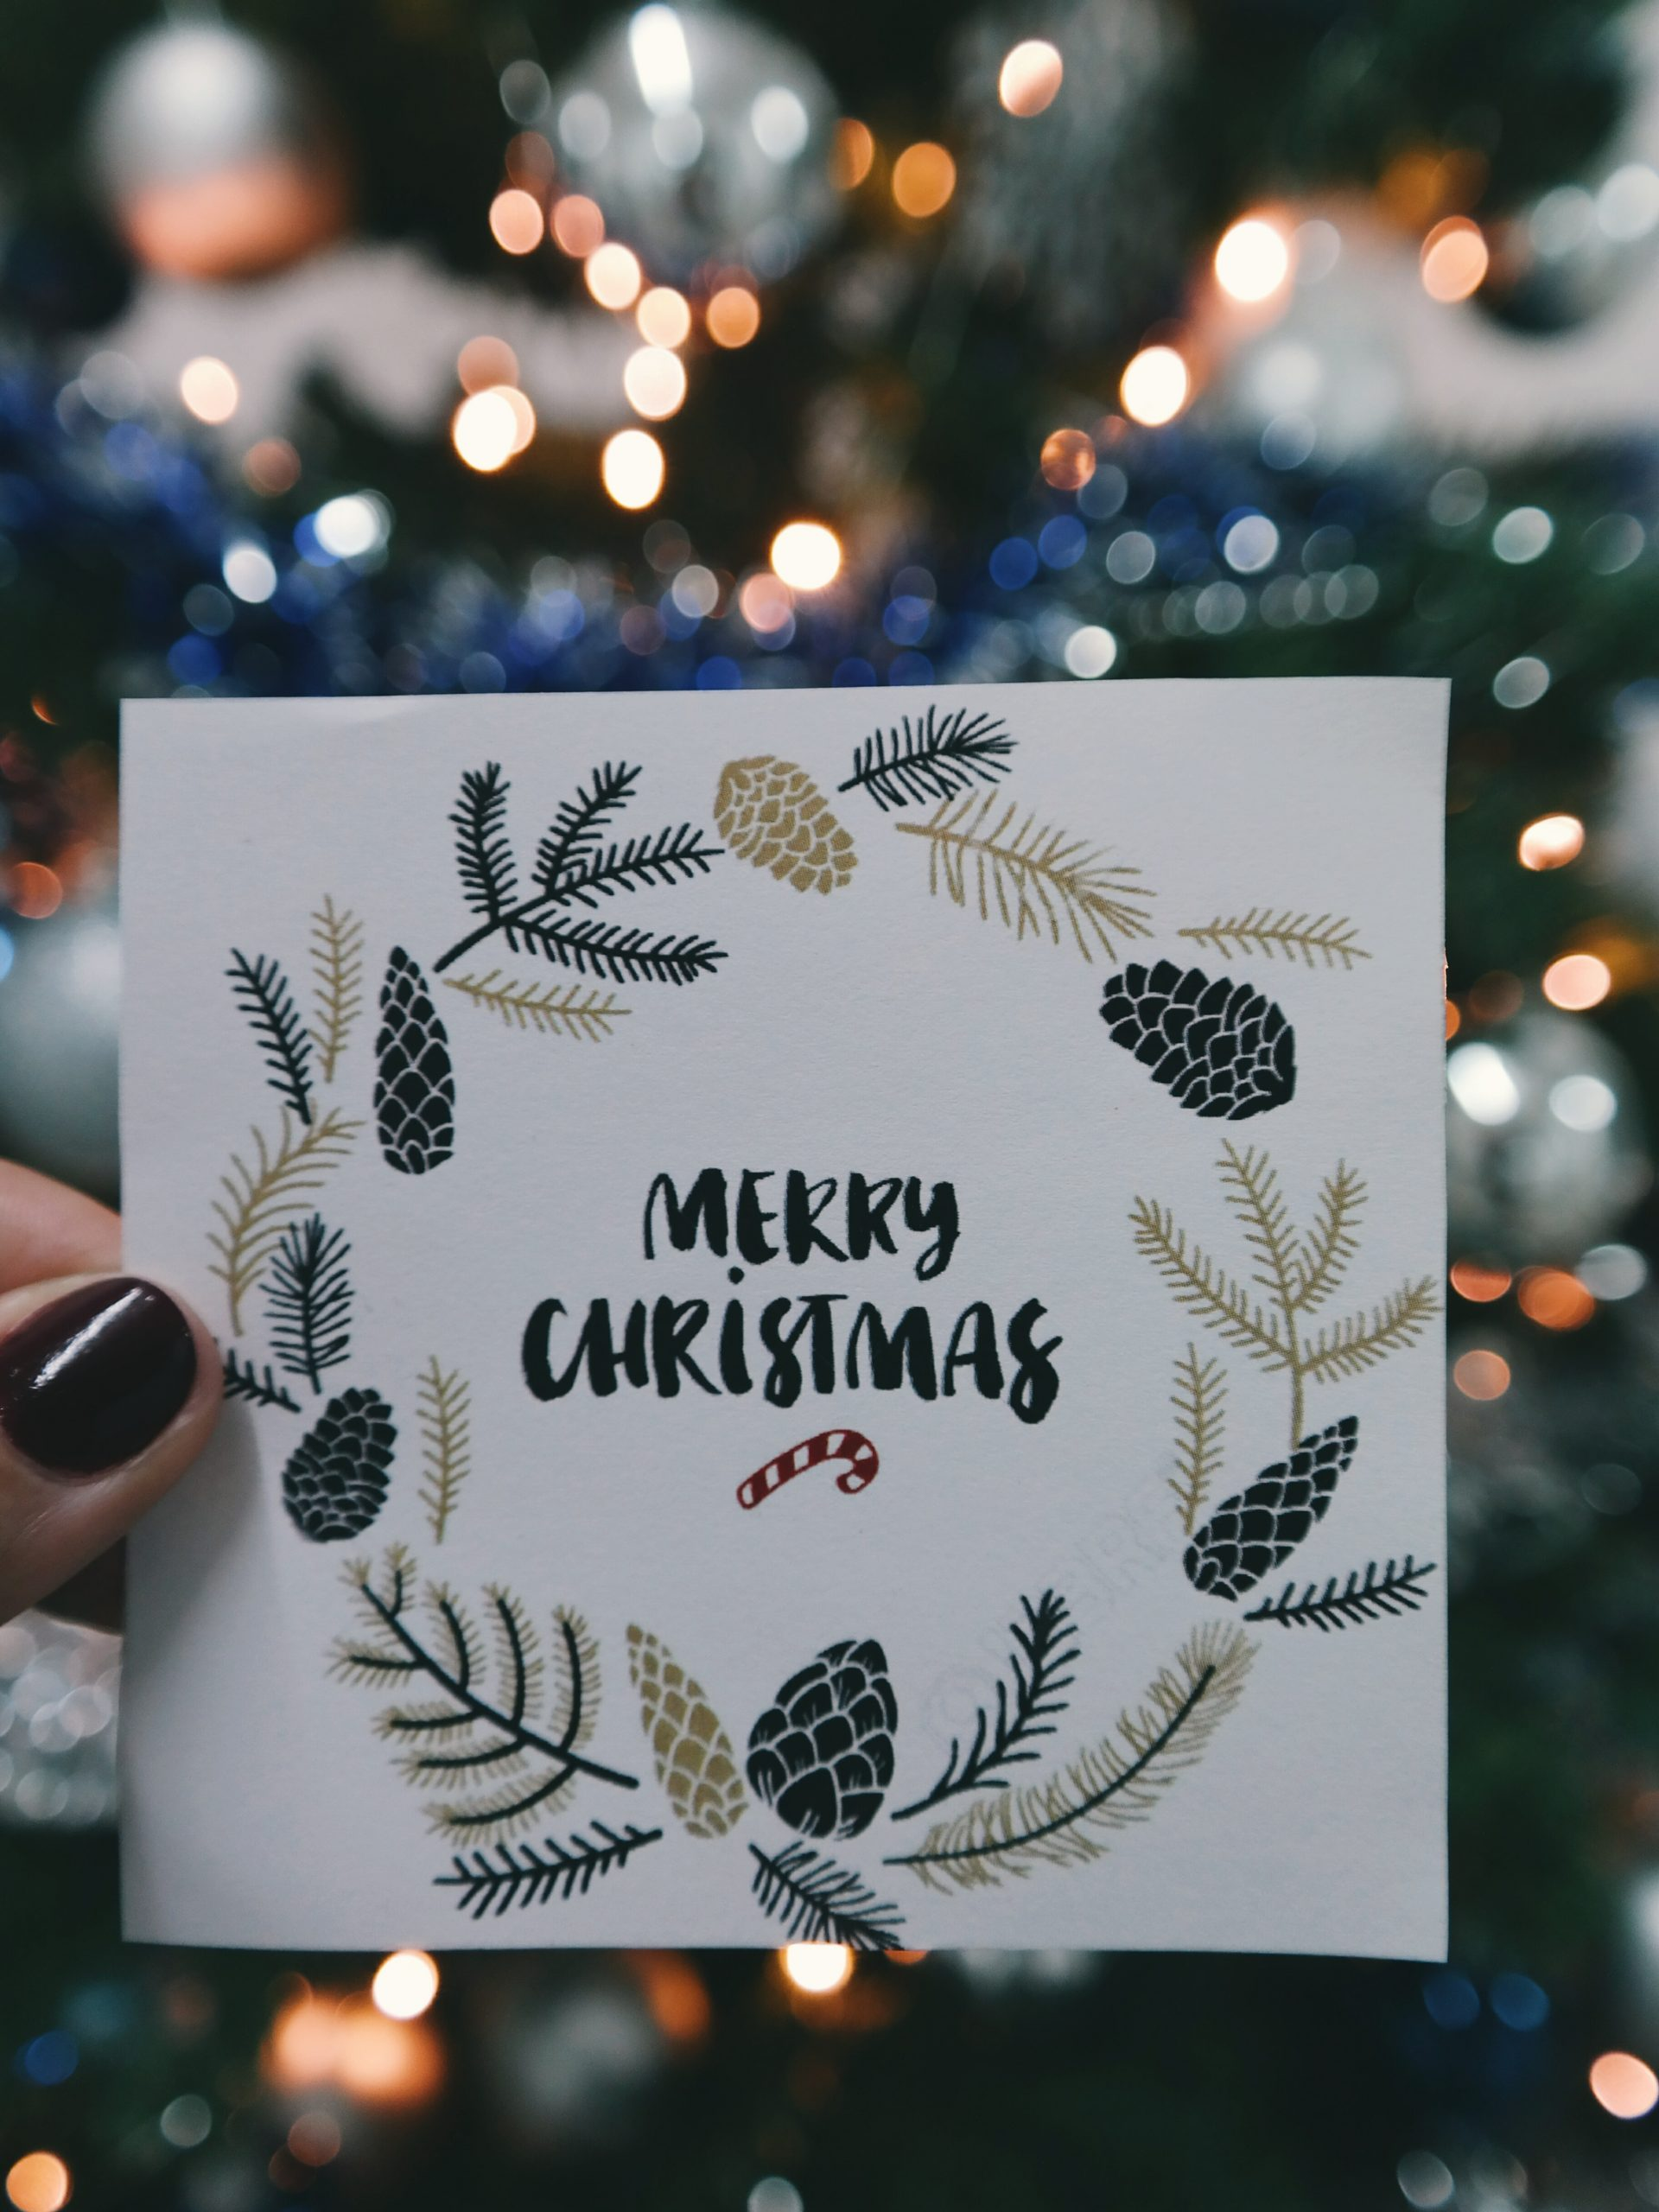 A wallpaper of a hand holding a Christmas greeting card